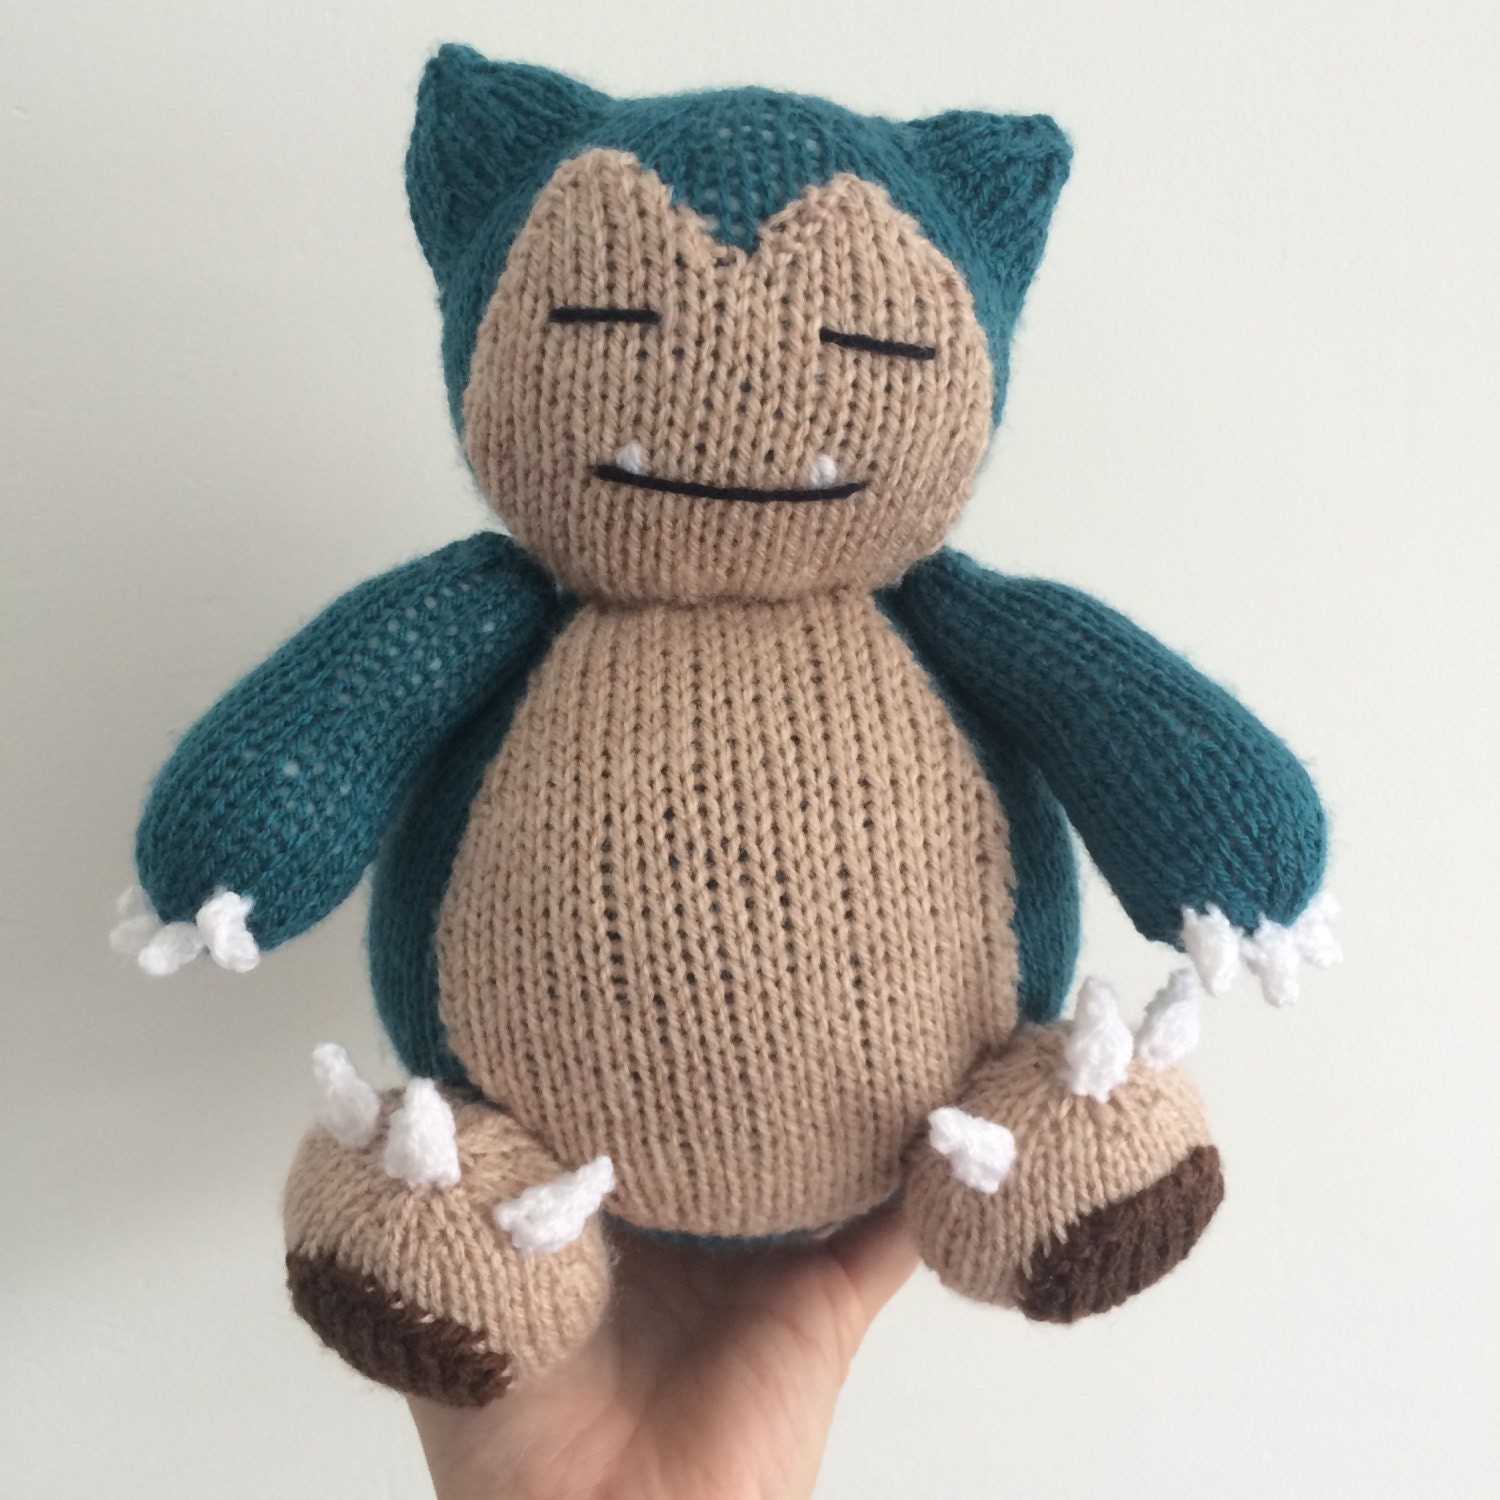 Knitting Patterns Plush Toys : Snorlax pokemon knitting pattern plushie toy childrens soft